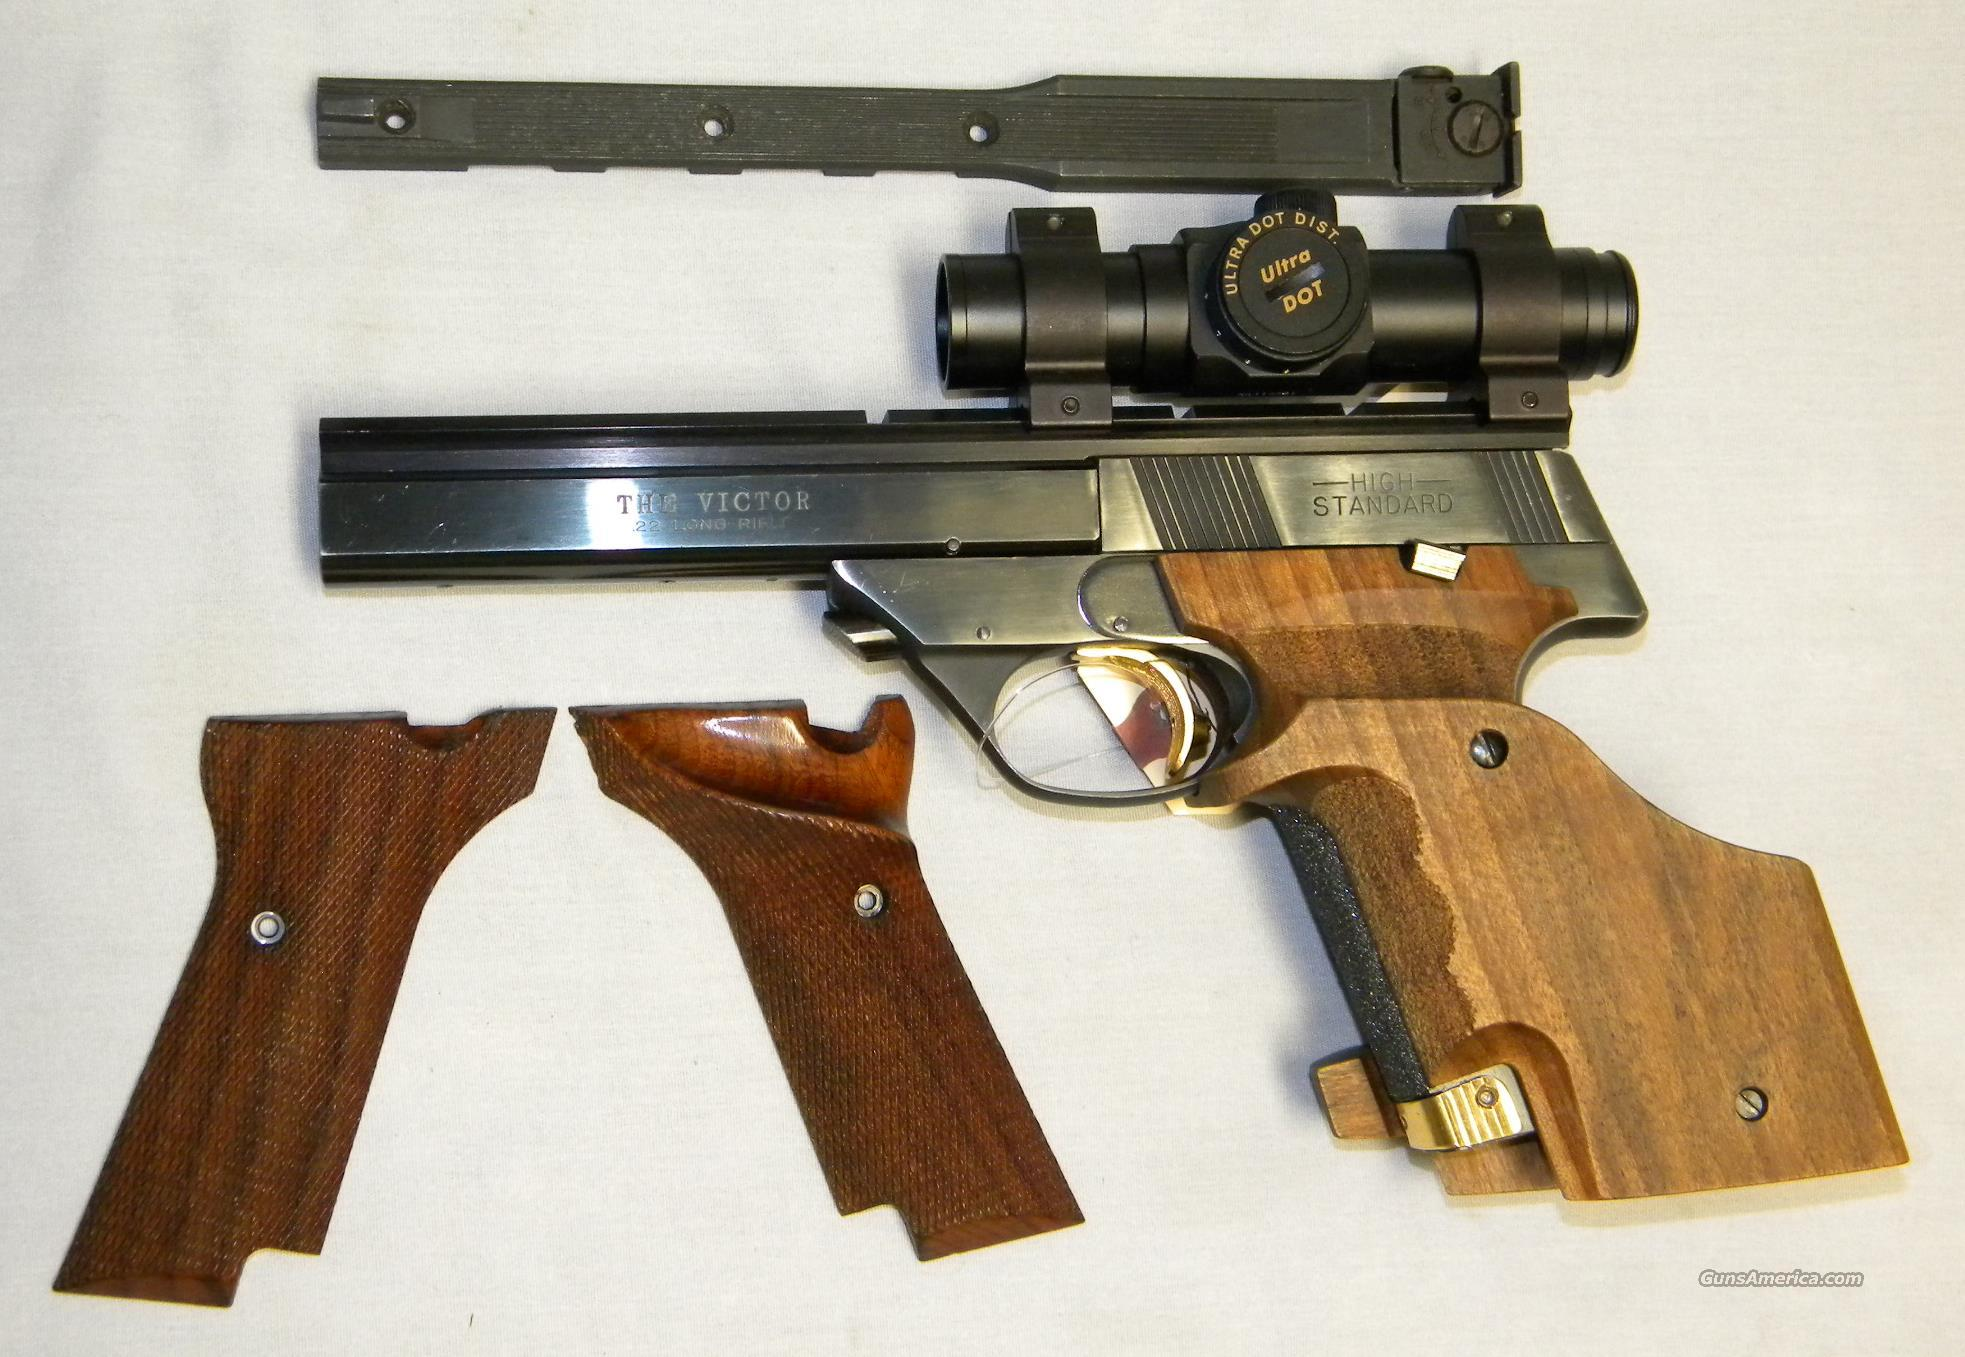 High Standard 'The Victor', Mdl 107 Military, .22LR Target Pistol  Guns > Pistols > High Standard Pistols